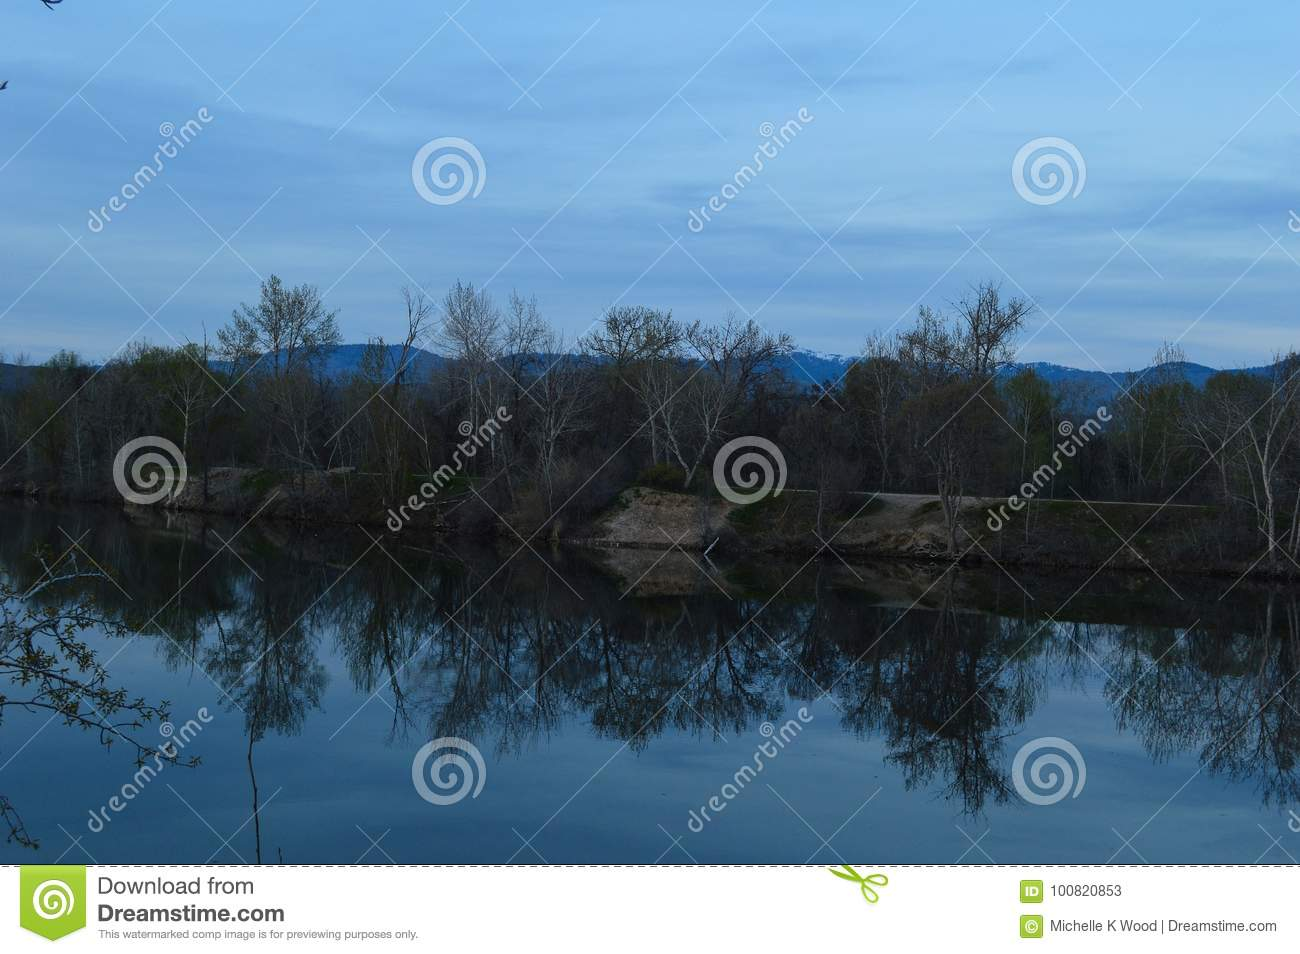 Reflections of shore on lake on a blue day!